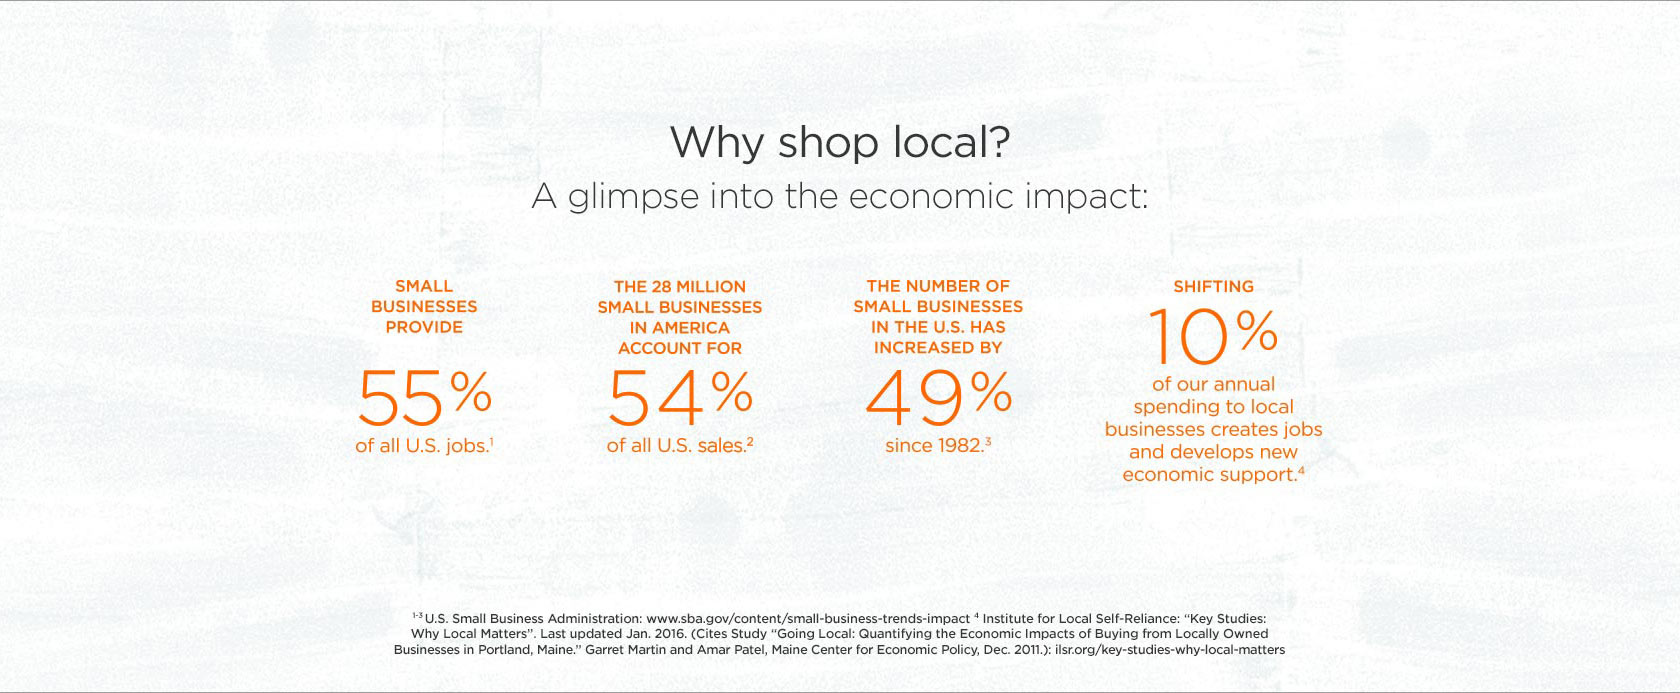 Why Shop Local? A Glimpse Into The Economic Impact